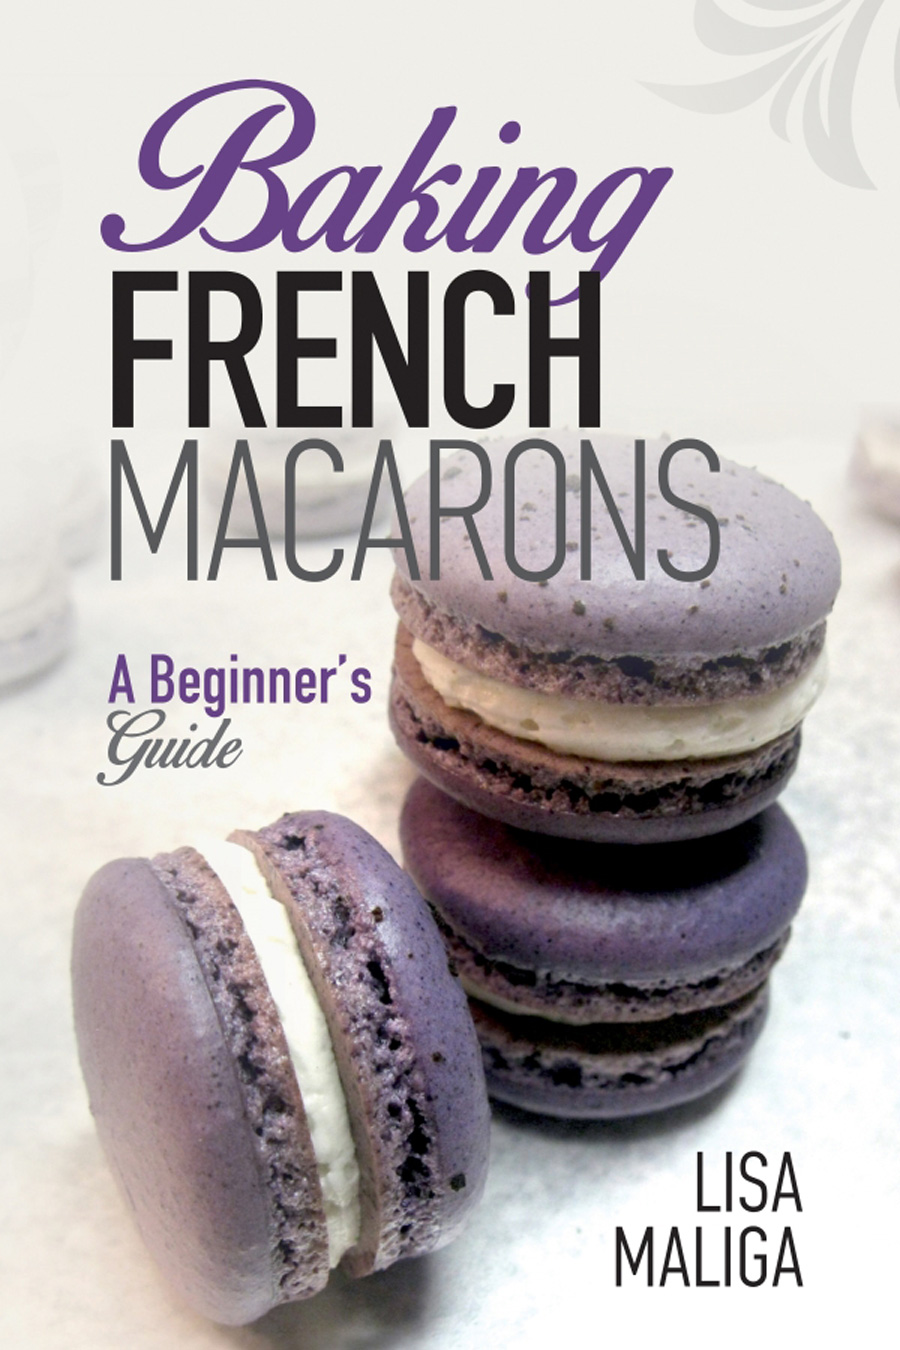 Baking-French-Macarons-by-Lisa-Maliga.jpg